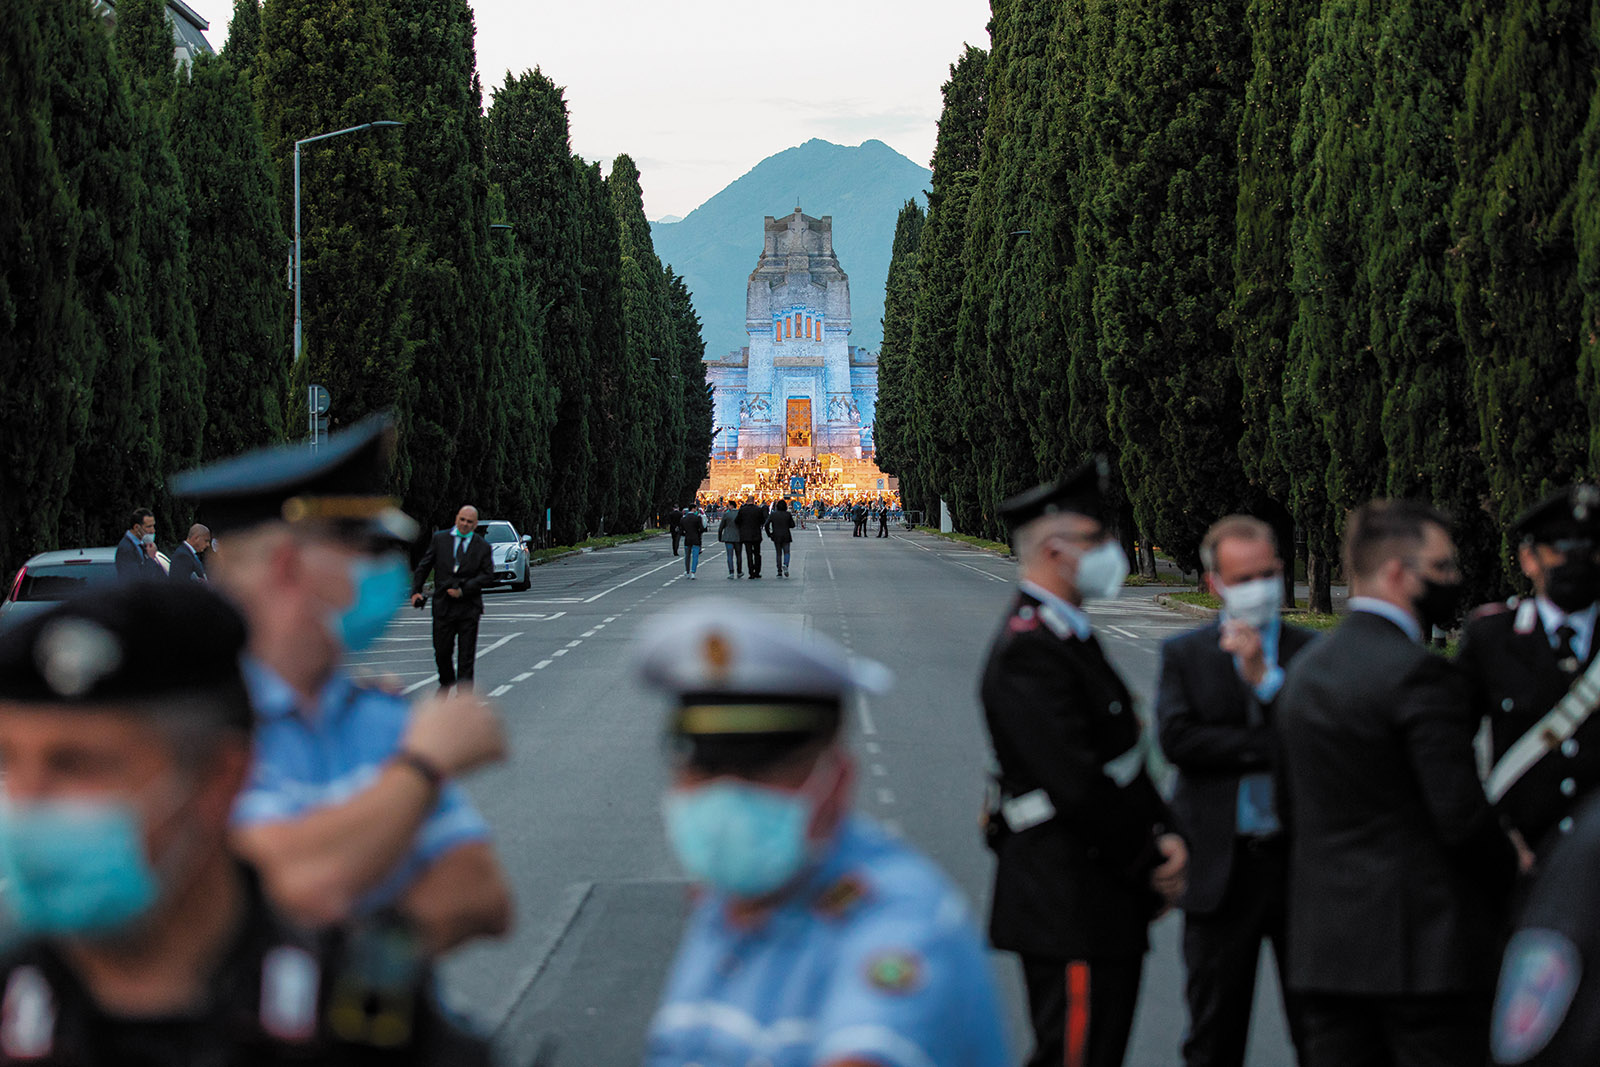 The Monumental Cemetery of Bergamo during a performance of Donizetti's Requiem in memory of Covid-19 victims, Bergamo, Italy, June 2020